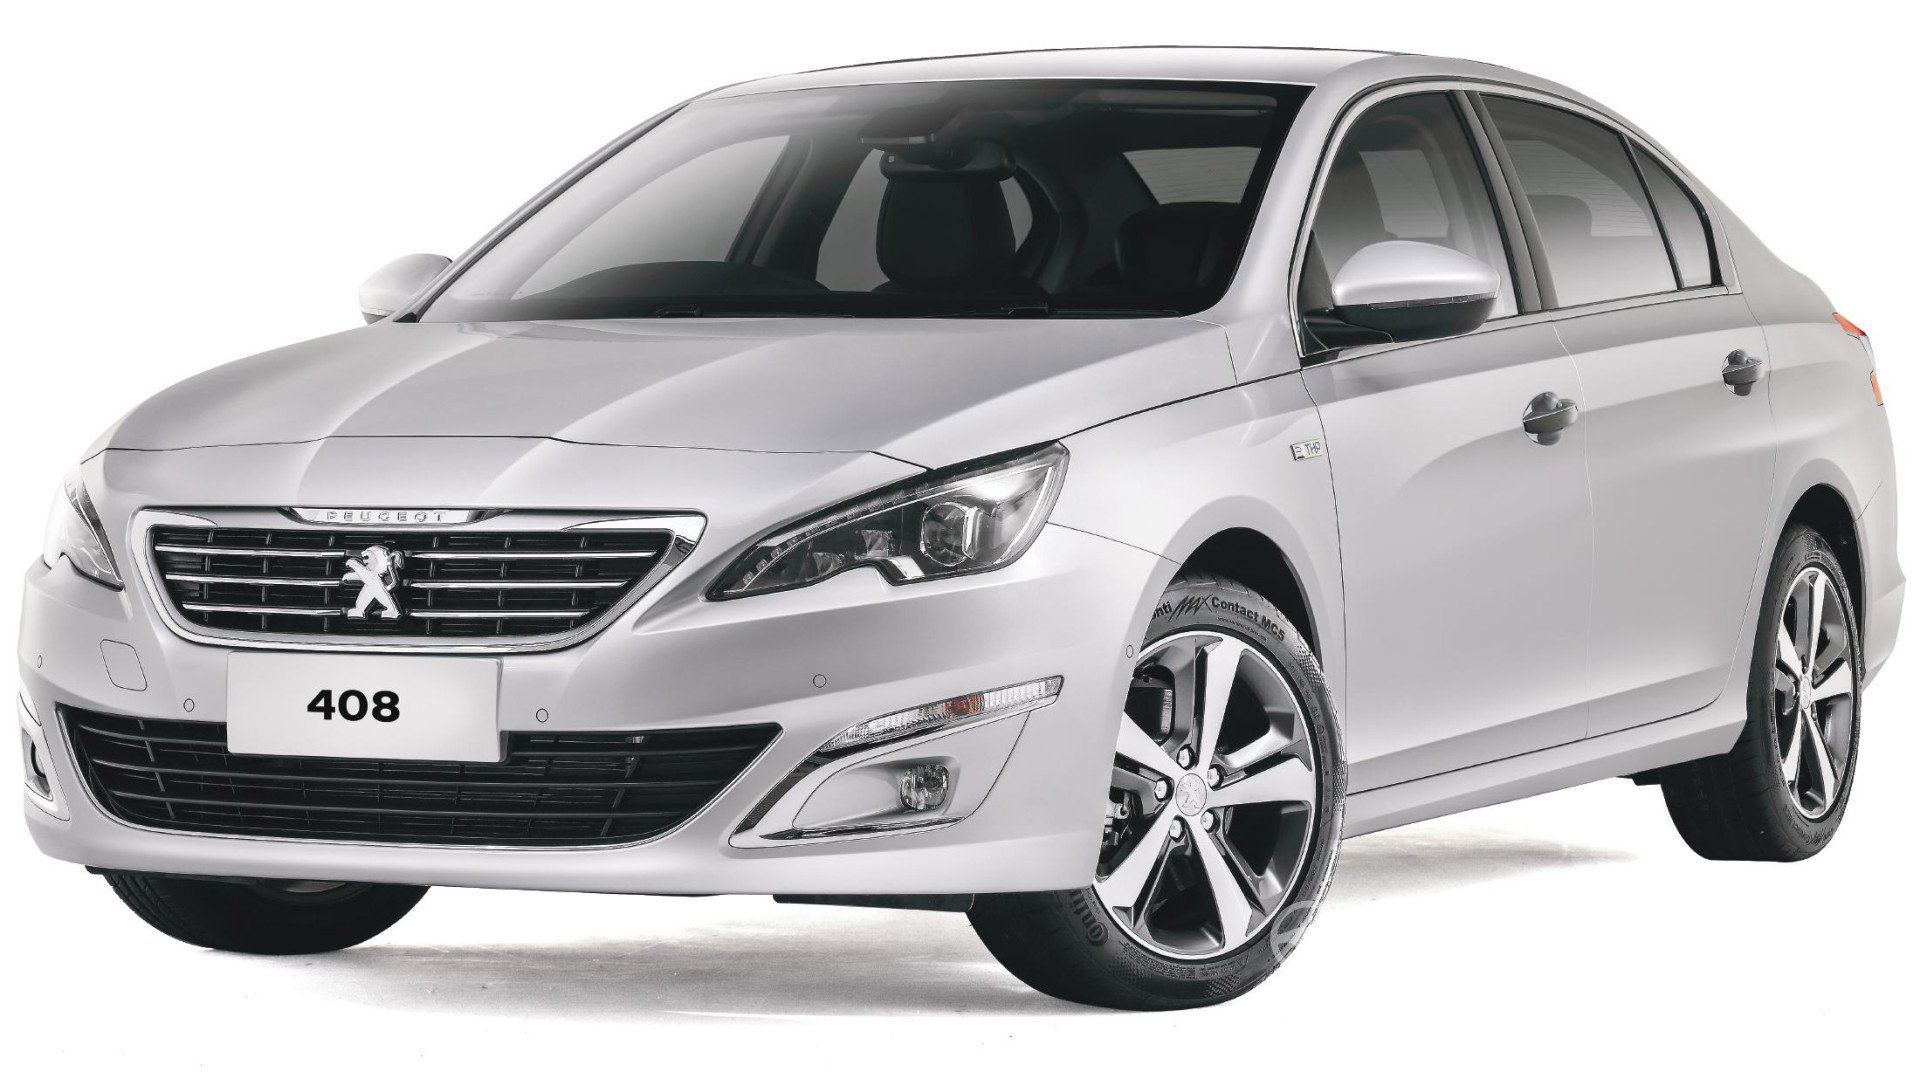 Peugeot 408 Mk2 (2016) Exterior Image #29673 In Malaysia